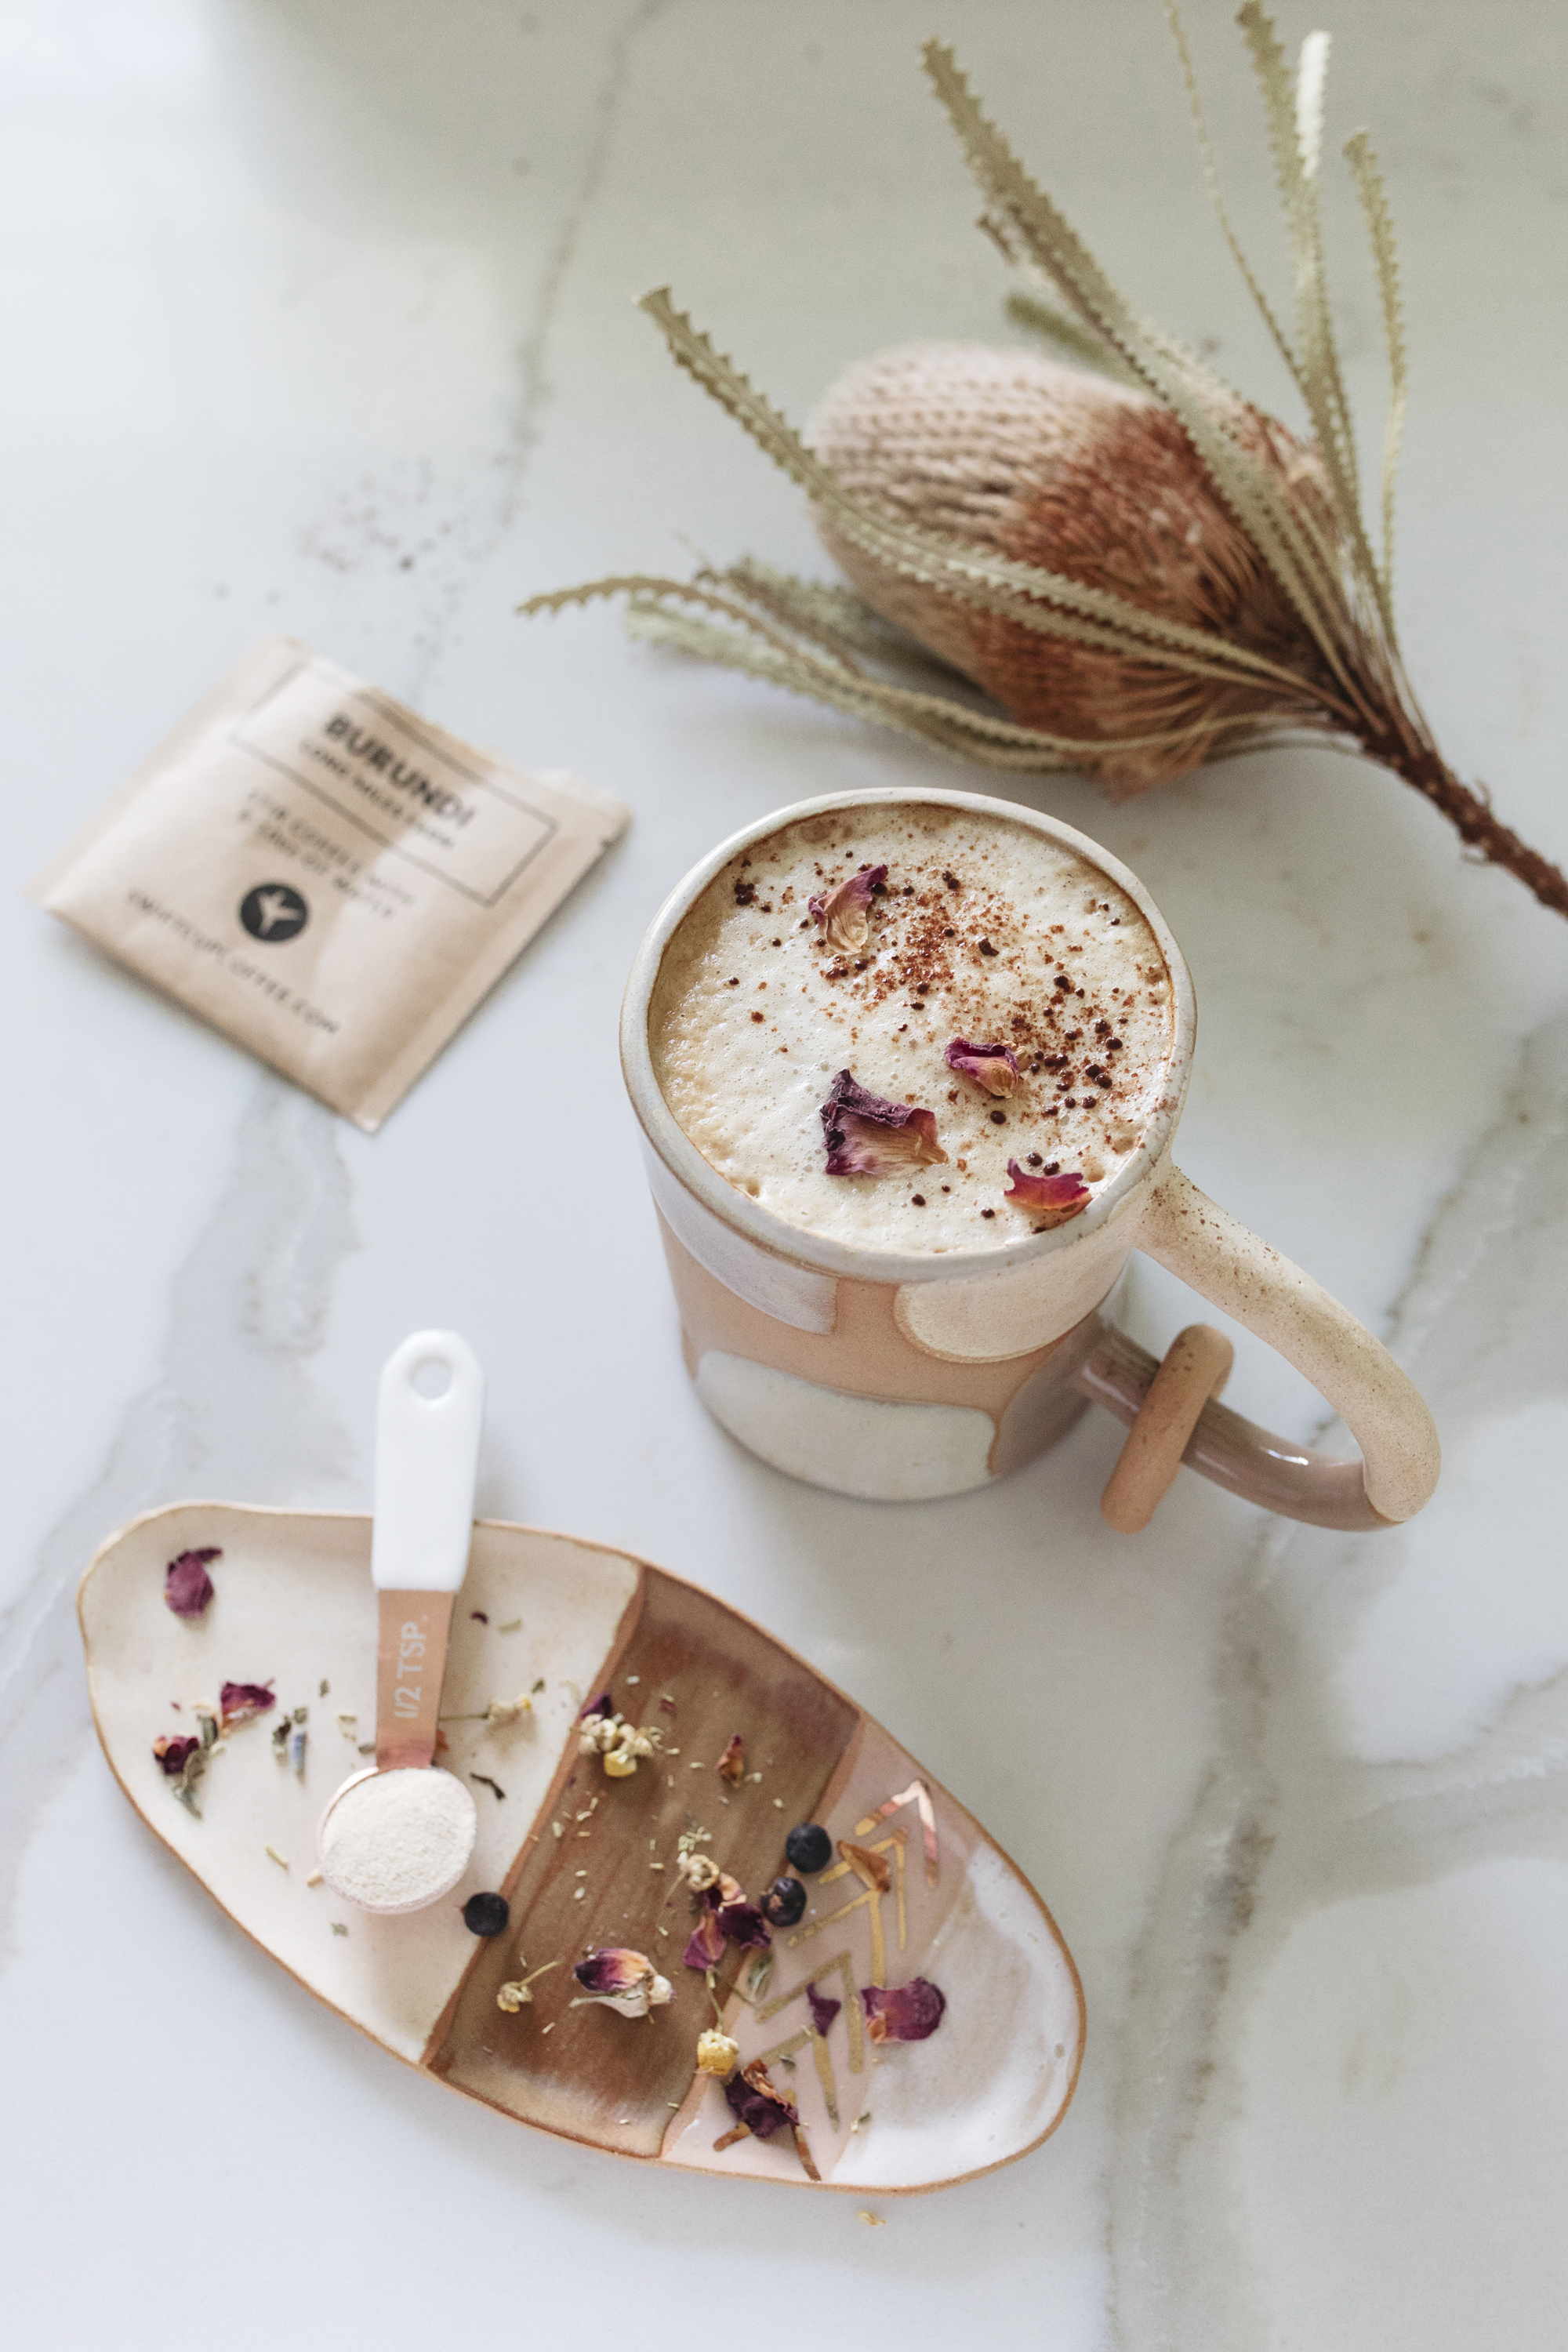 dried flowers make coffee a little extra creative and festive for the morning!